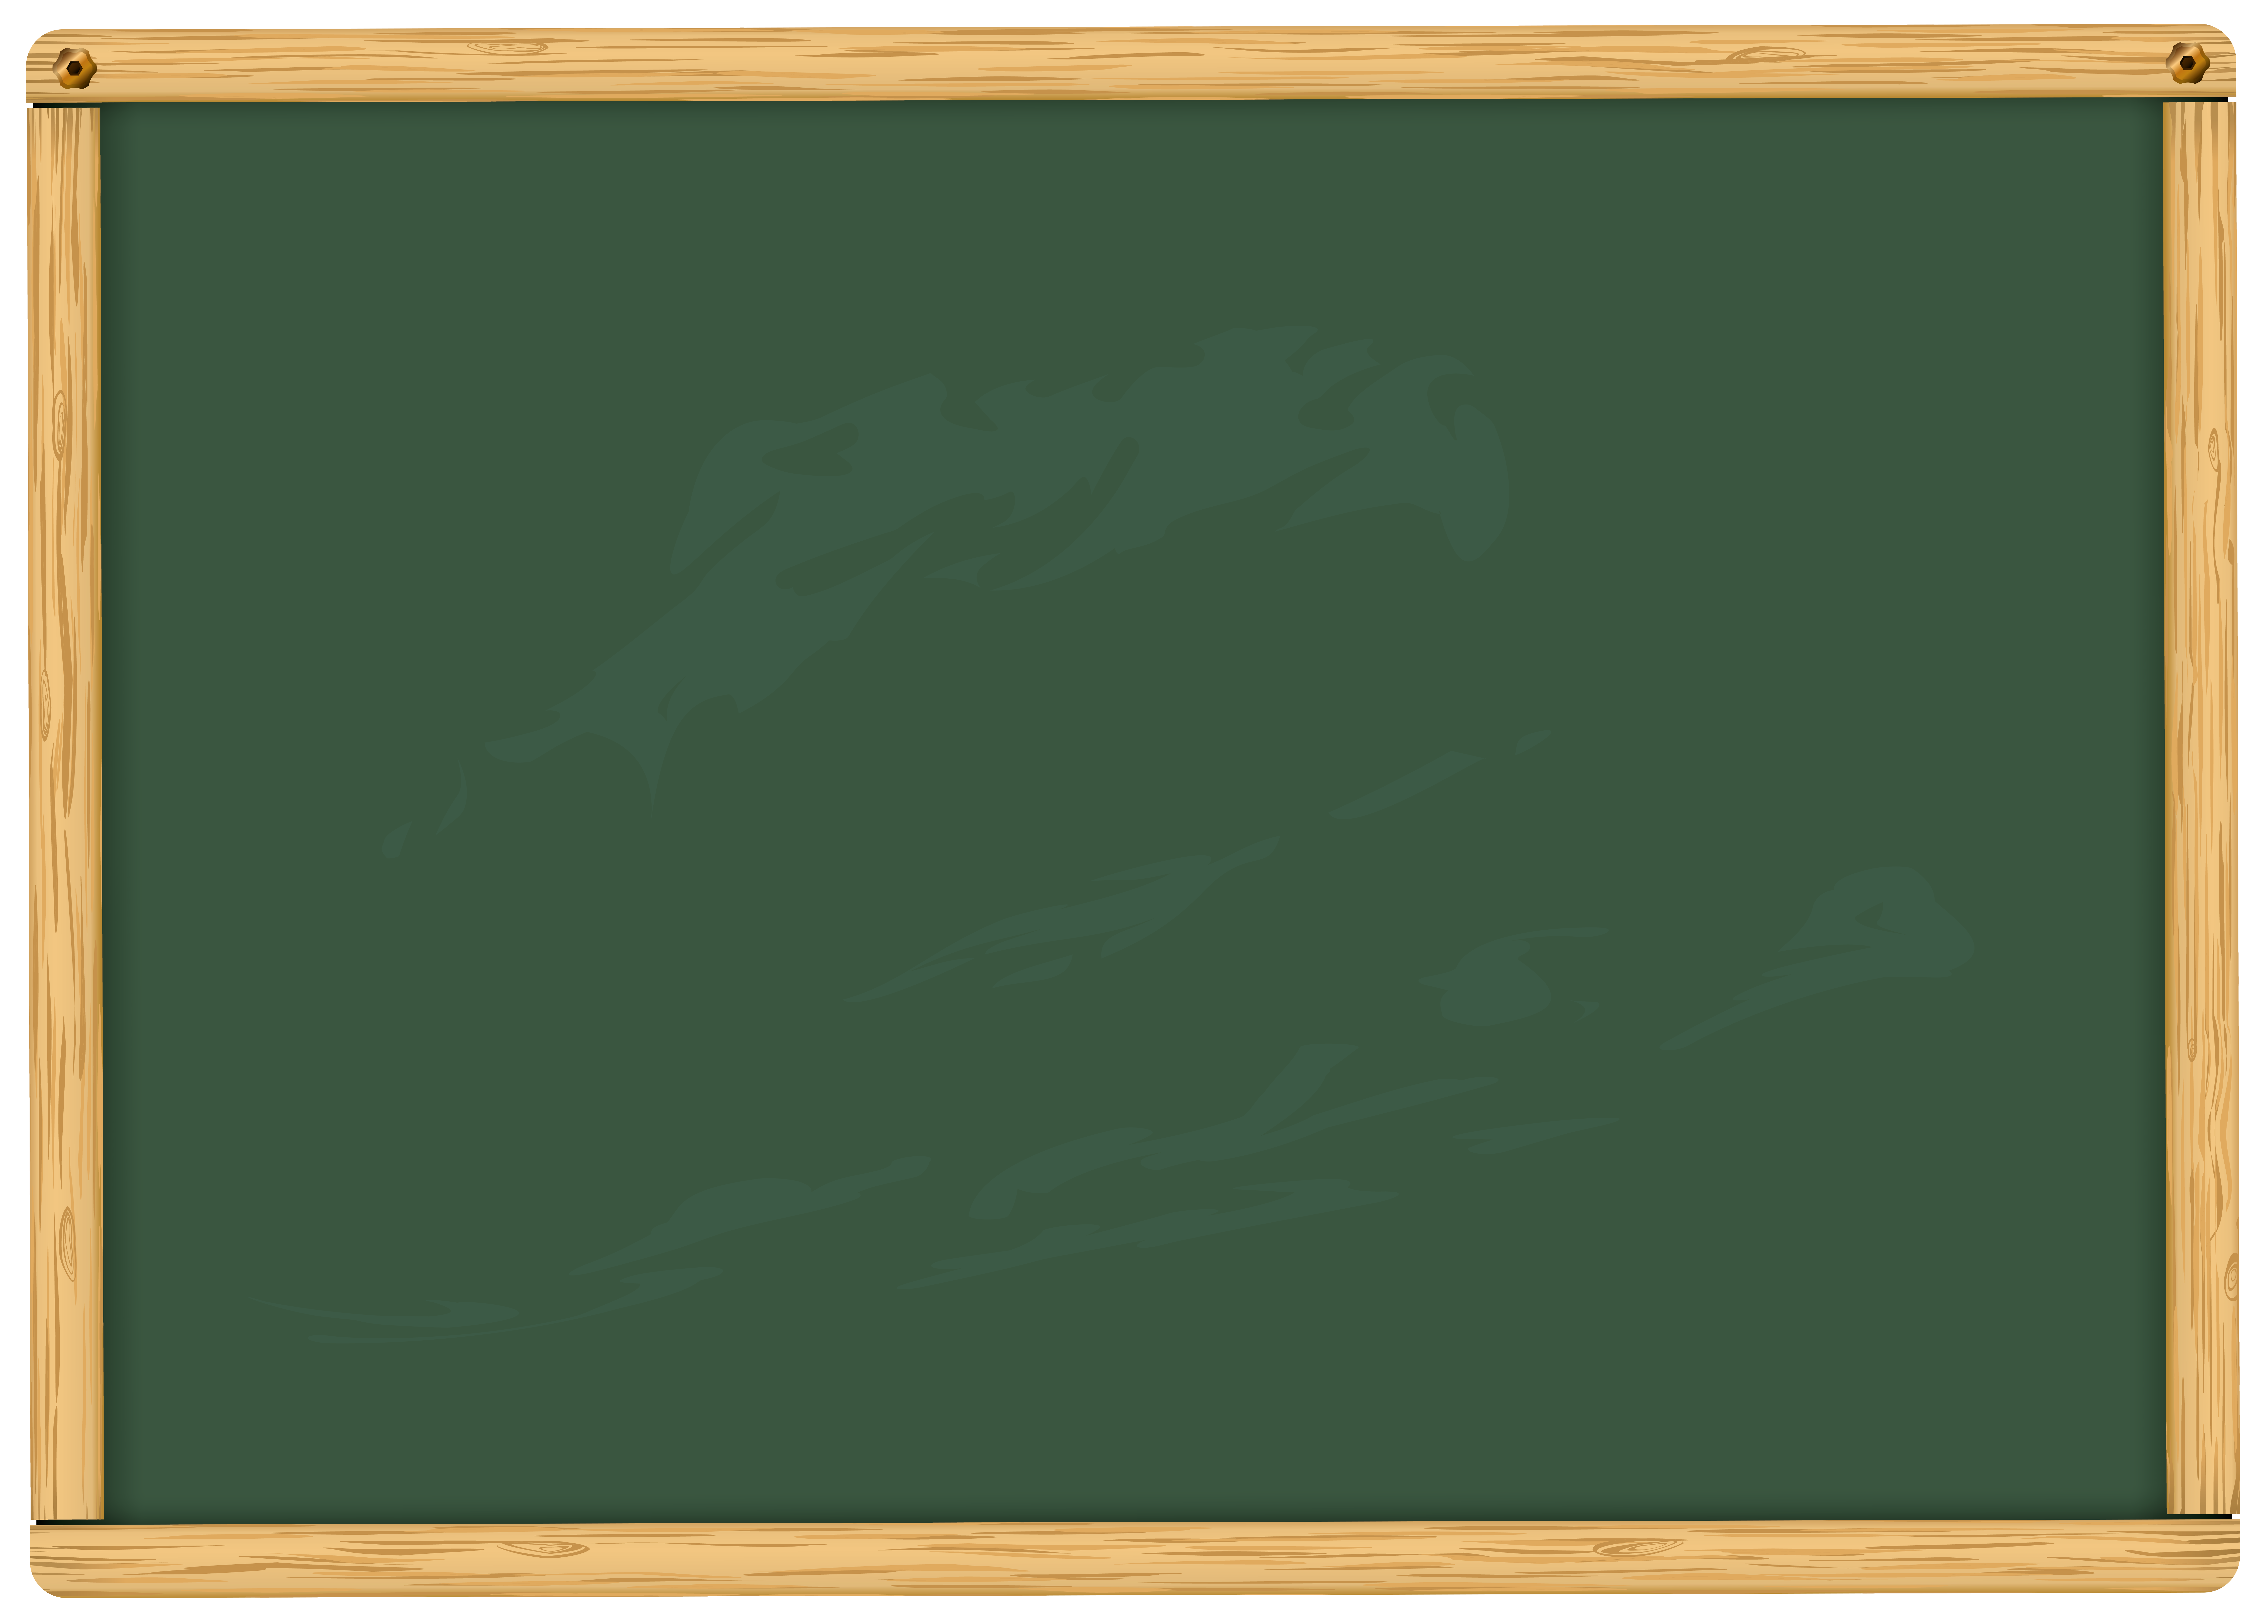 Green School Board PNG Clipart Image.